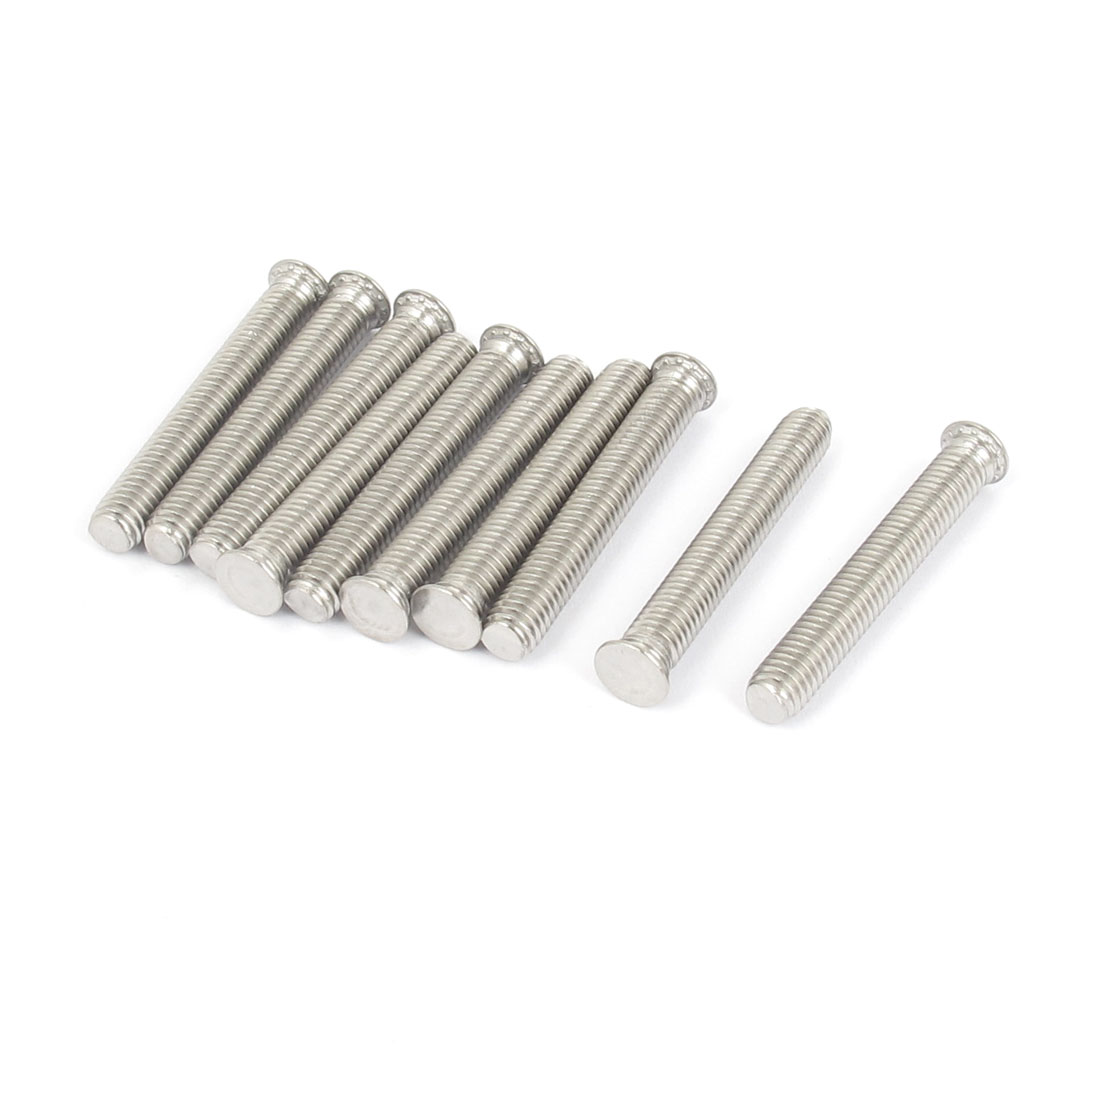 M5x35mm Flush Head Stainless Steel Self Clinching Threaded Studs Fastener 10pcs